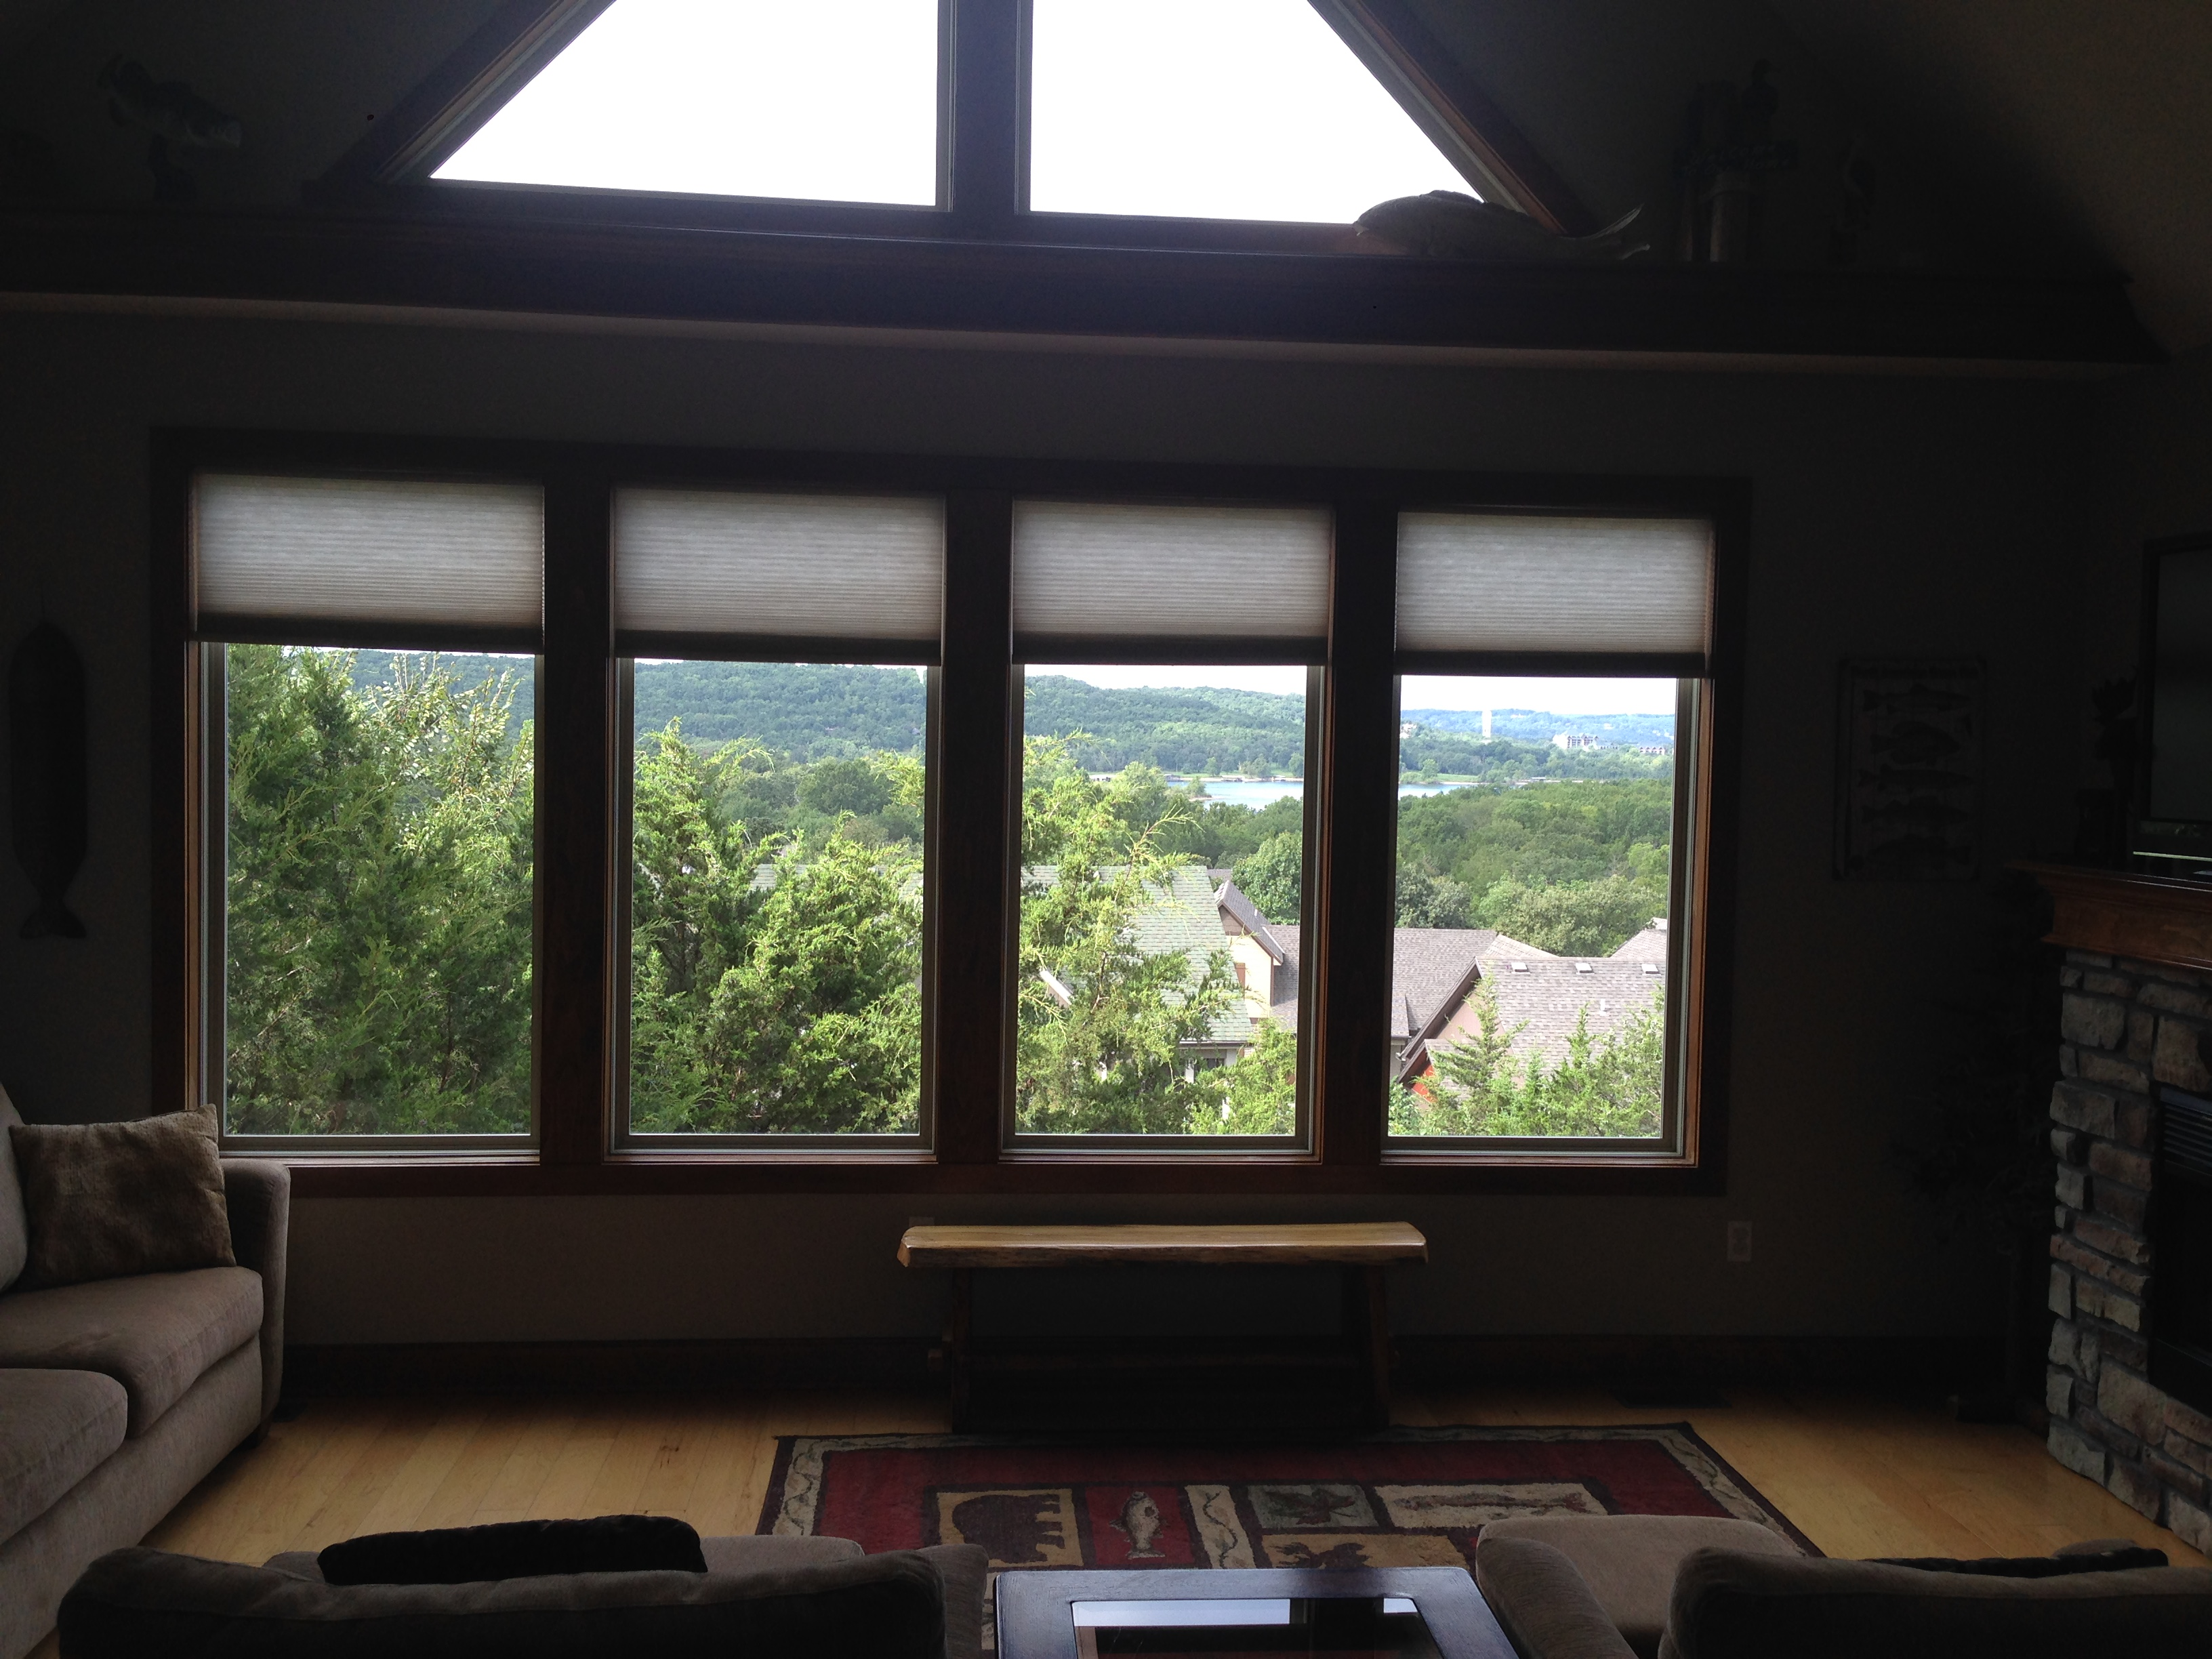 branson canyon vacation rental Alpine Lakeview - What a view